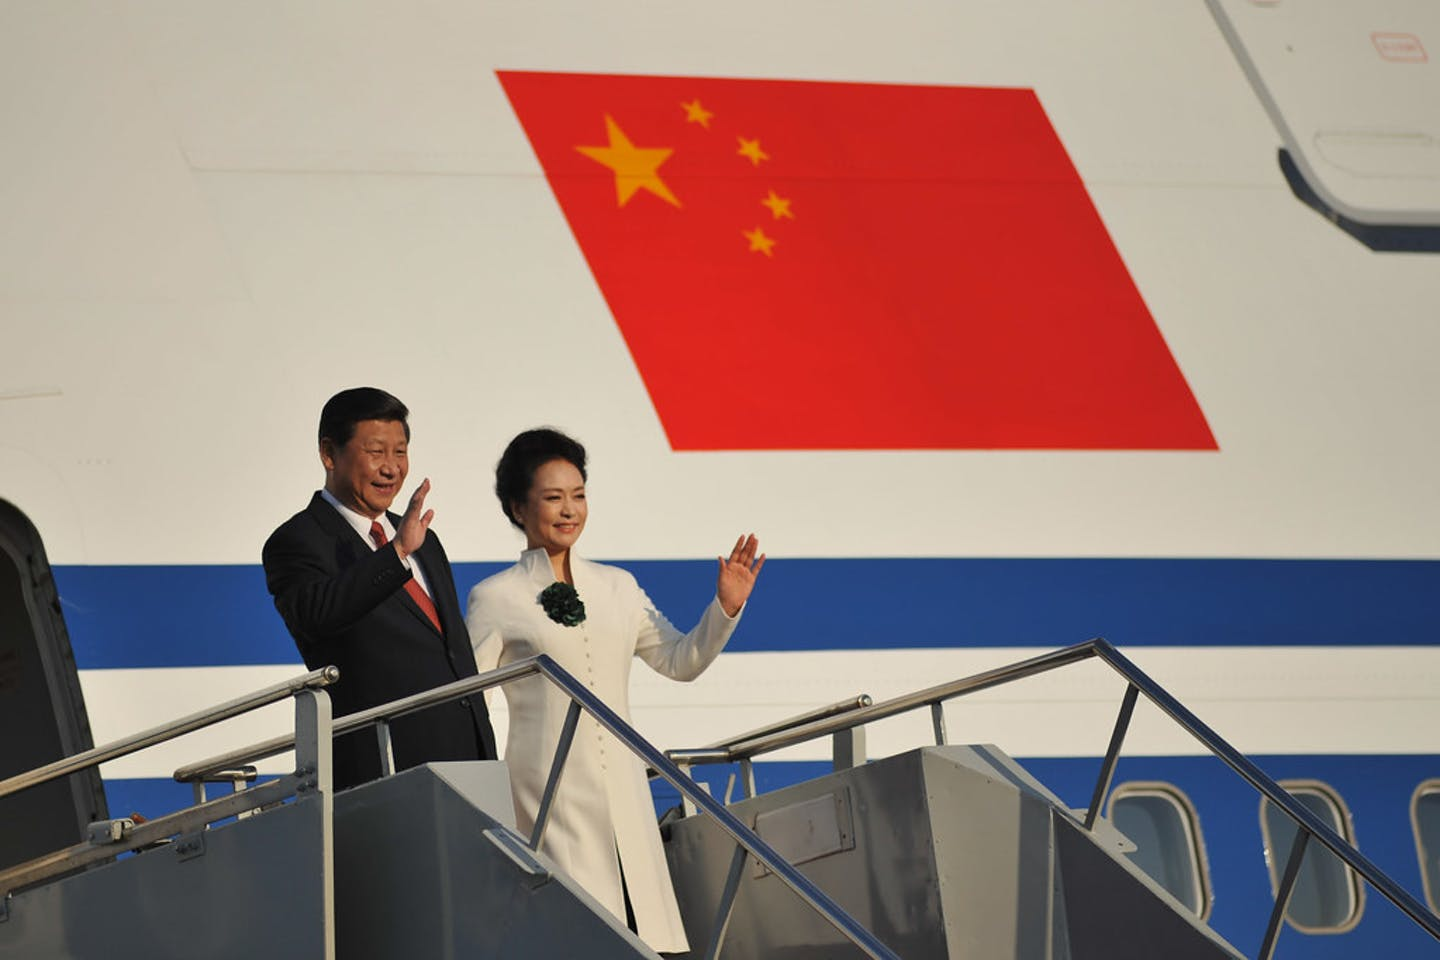 Chinese President Xi Jinping and his spouse Peng Liyuan.